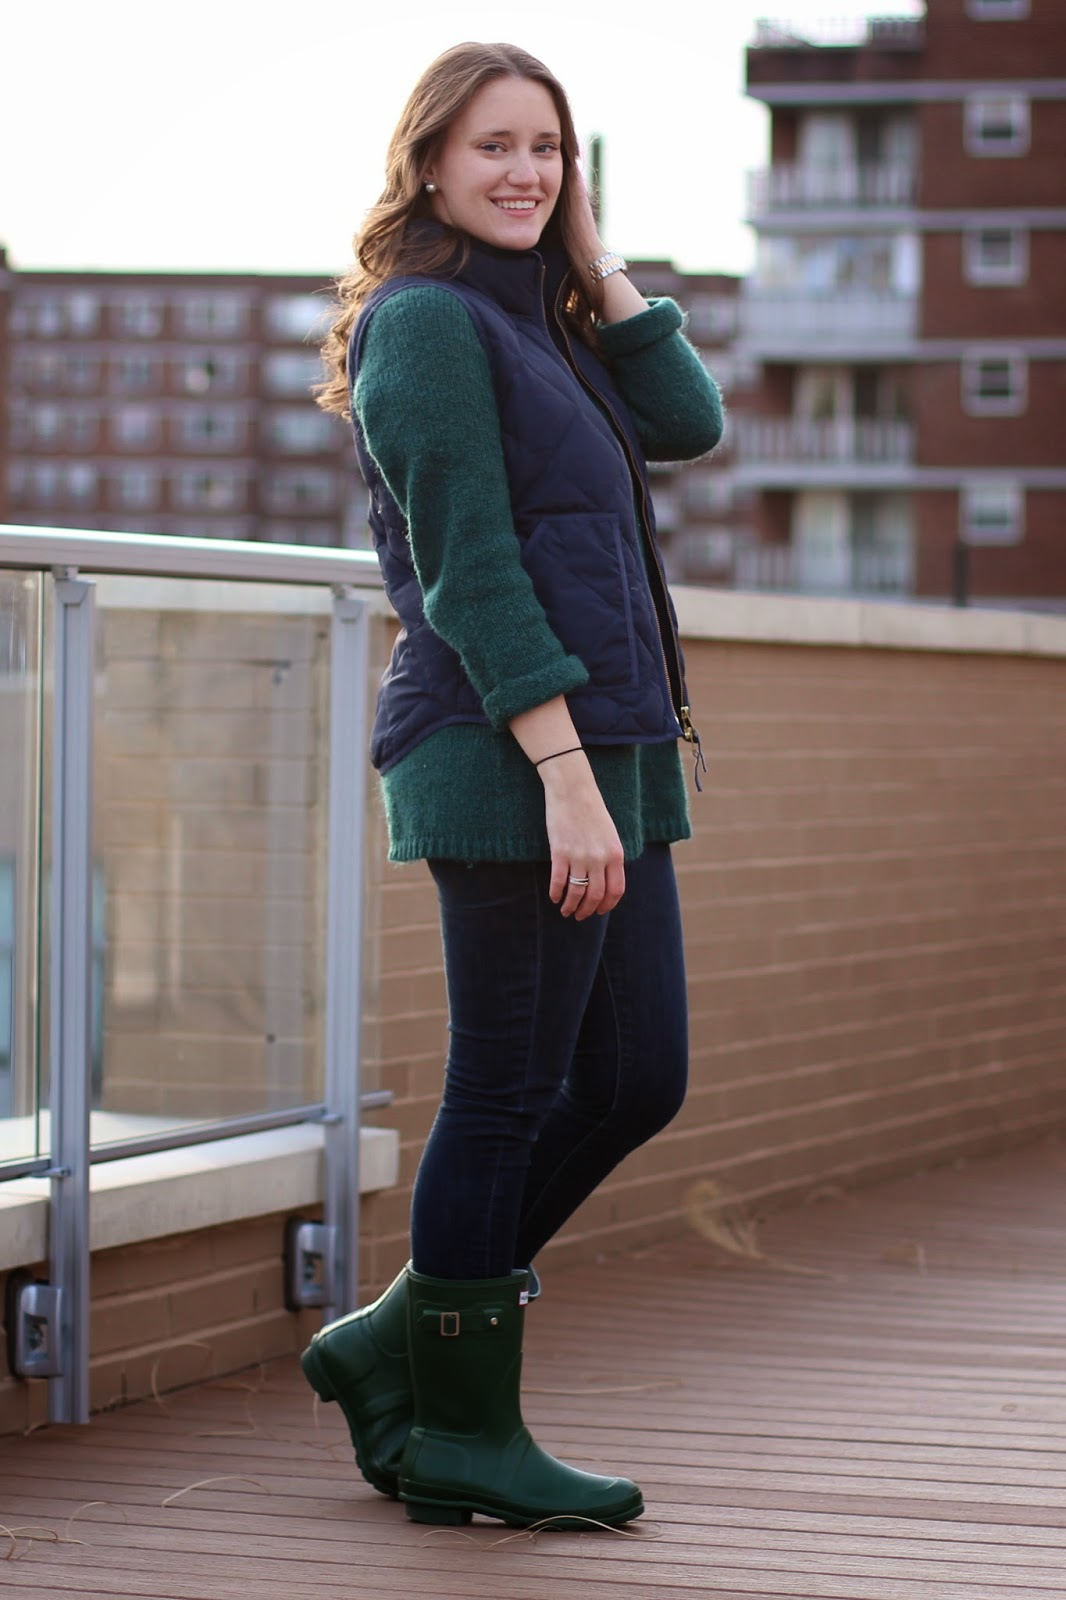 wear to a seattle mariners game, look cute, be stylish